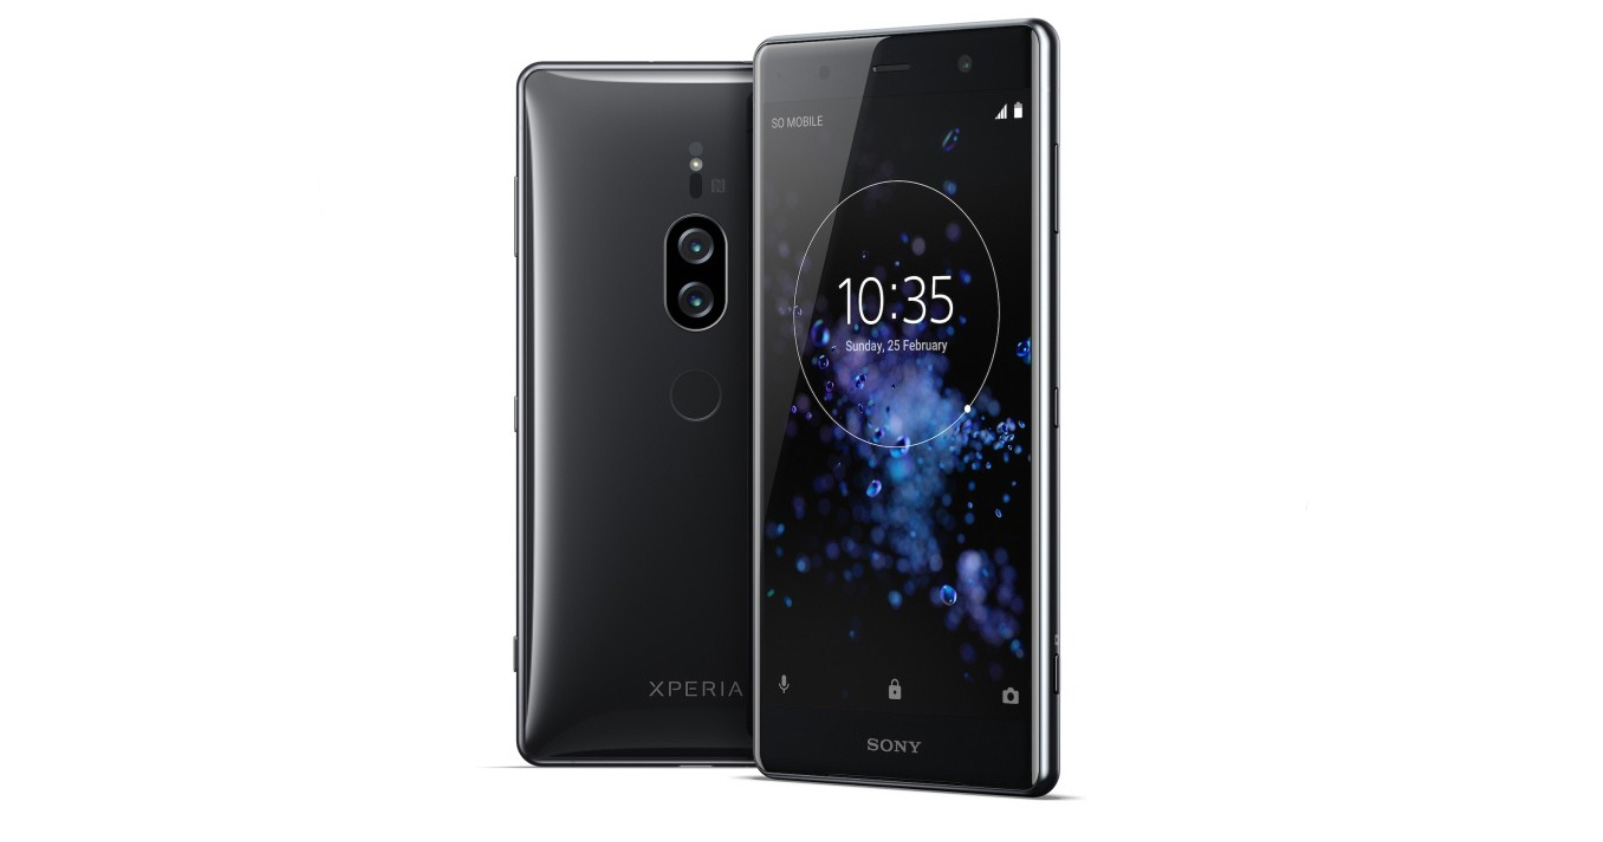 ea6910744 The Xperia XZ2 Premium is Sony s first dual camera smartphone